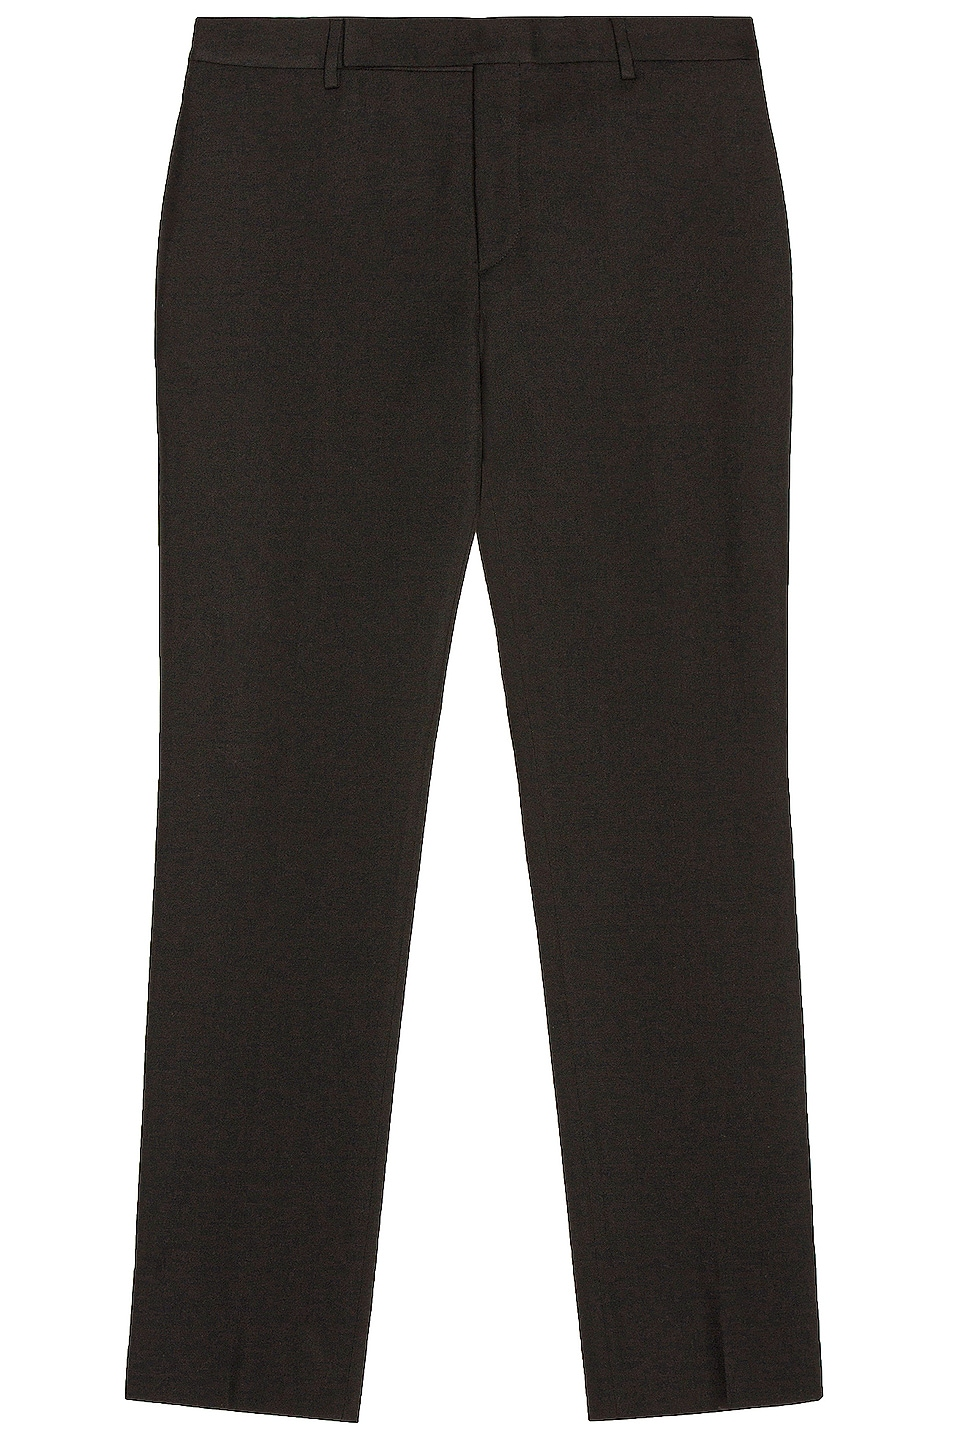 Image 1 of Saint Laurent Classic Trouser in Black